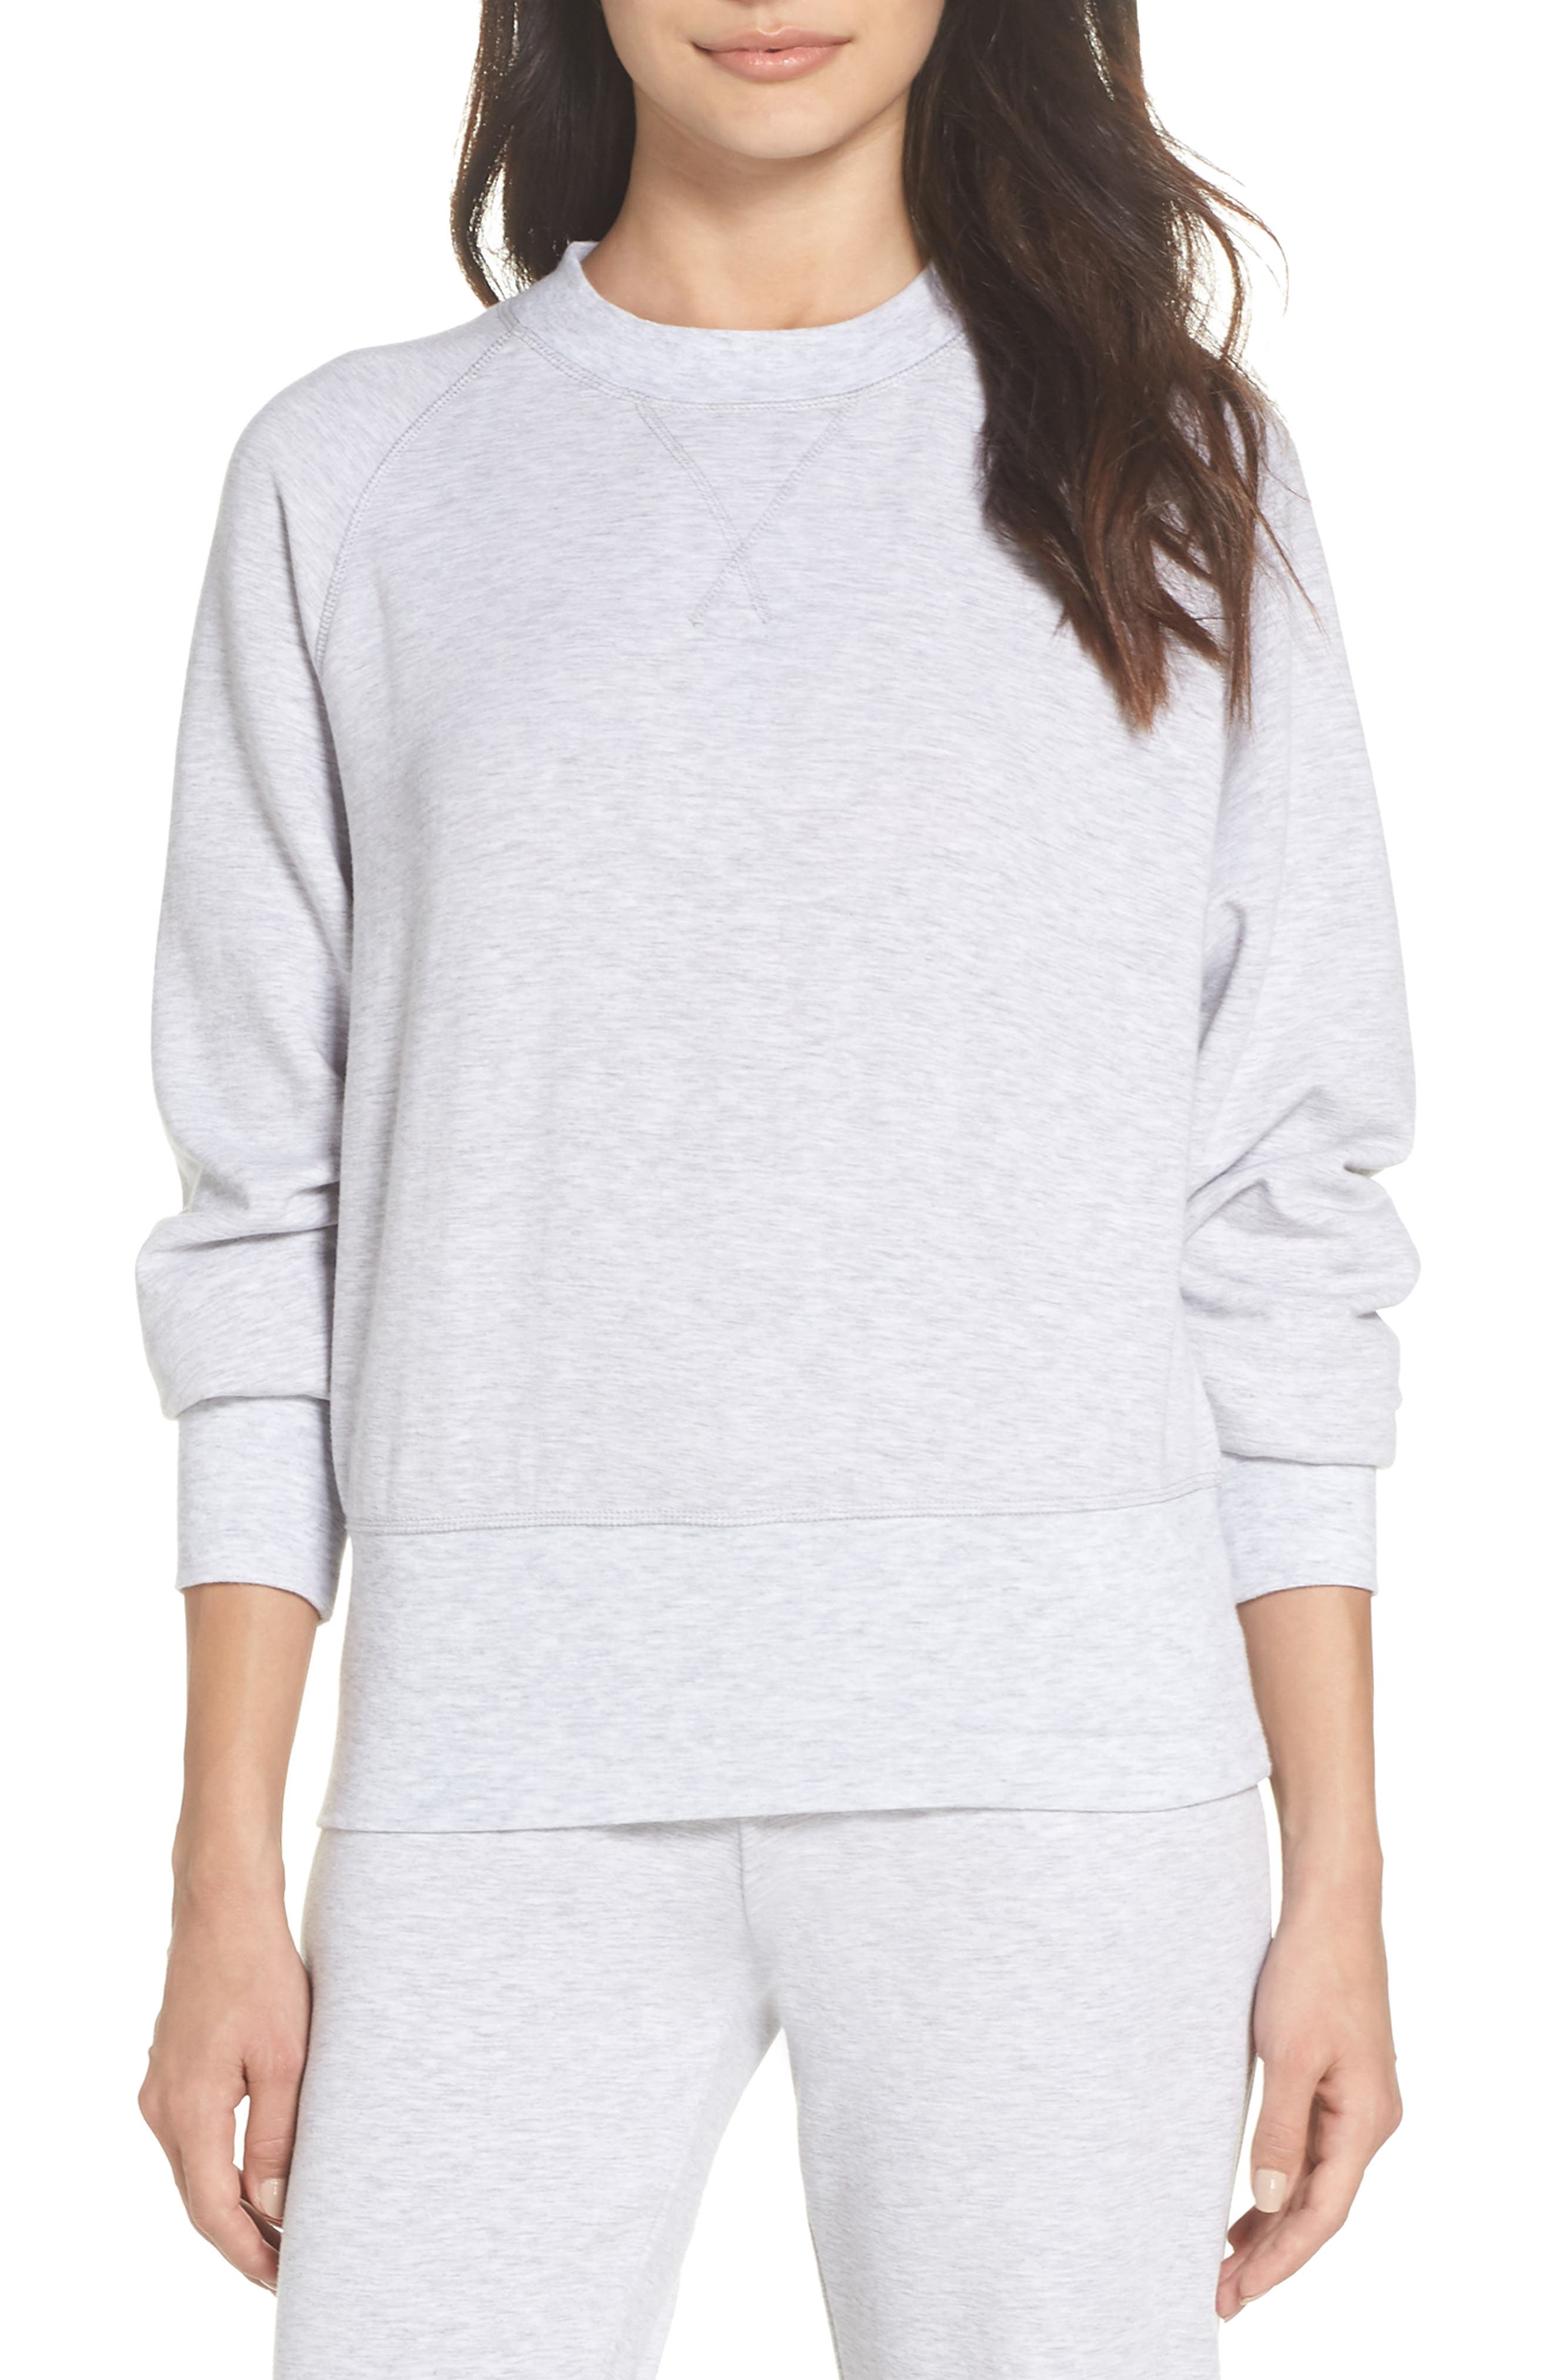 Cool Touch Sweatshirt, Main, color, 020